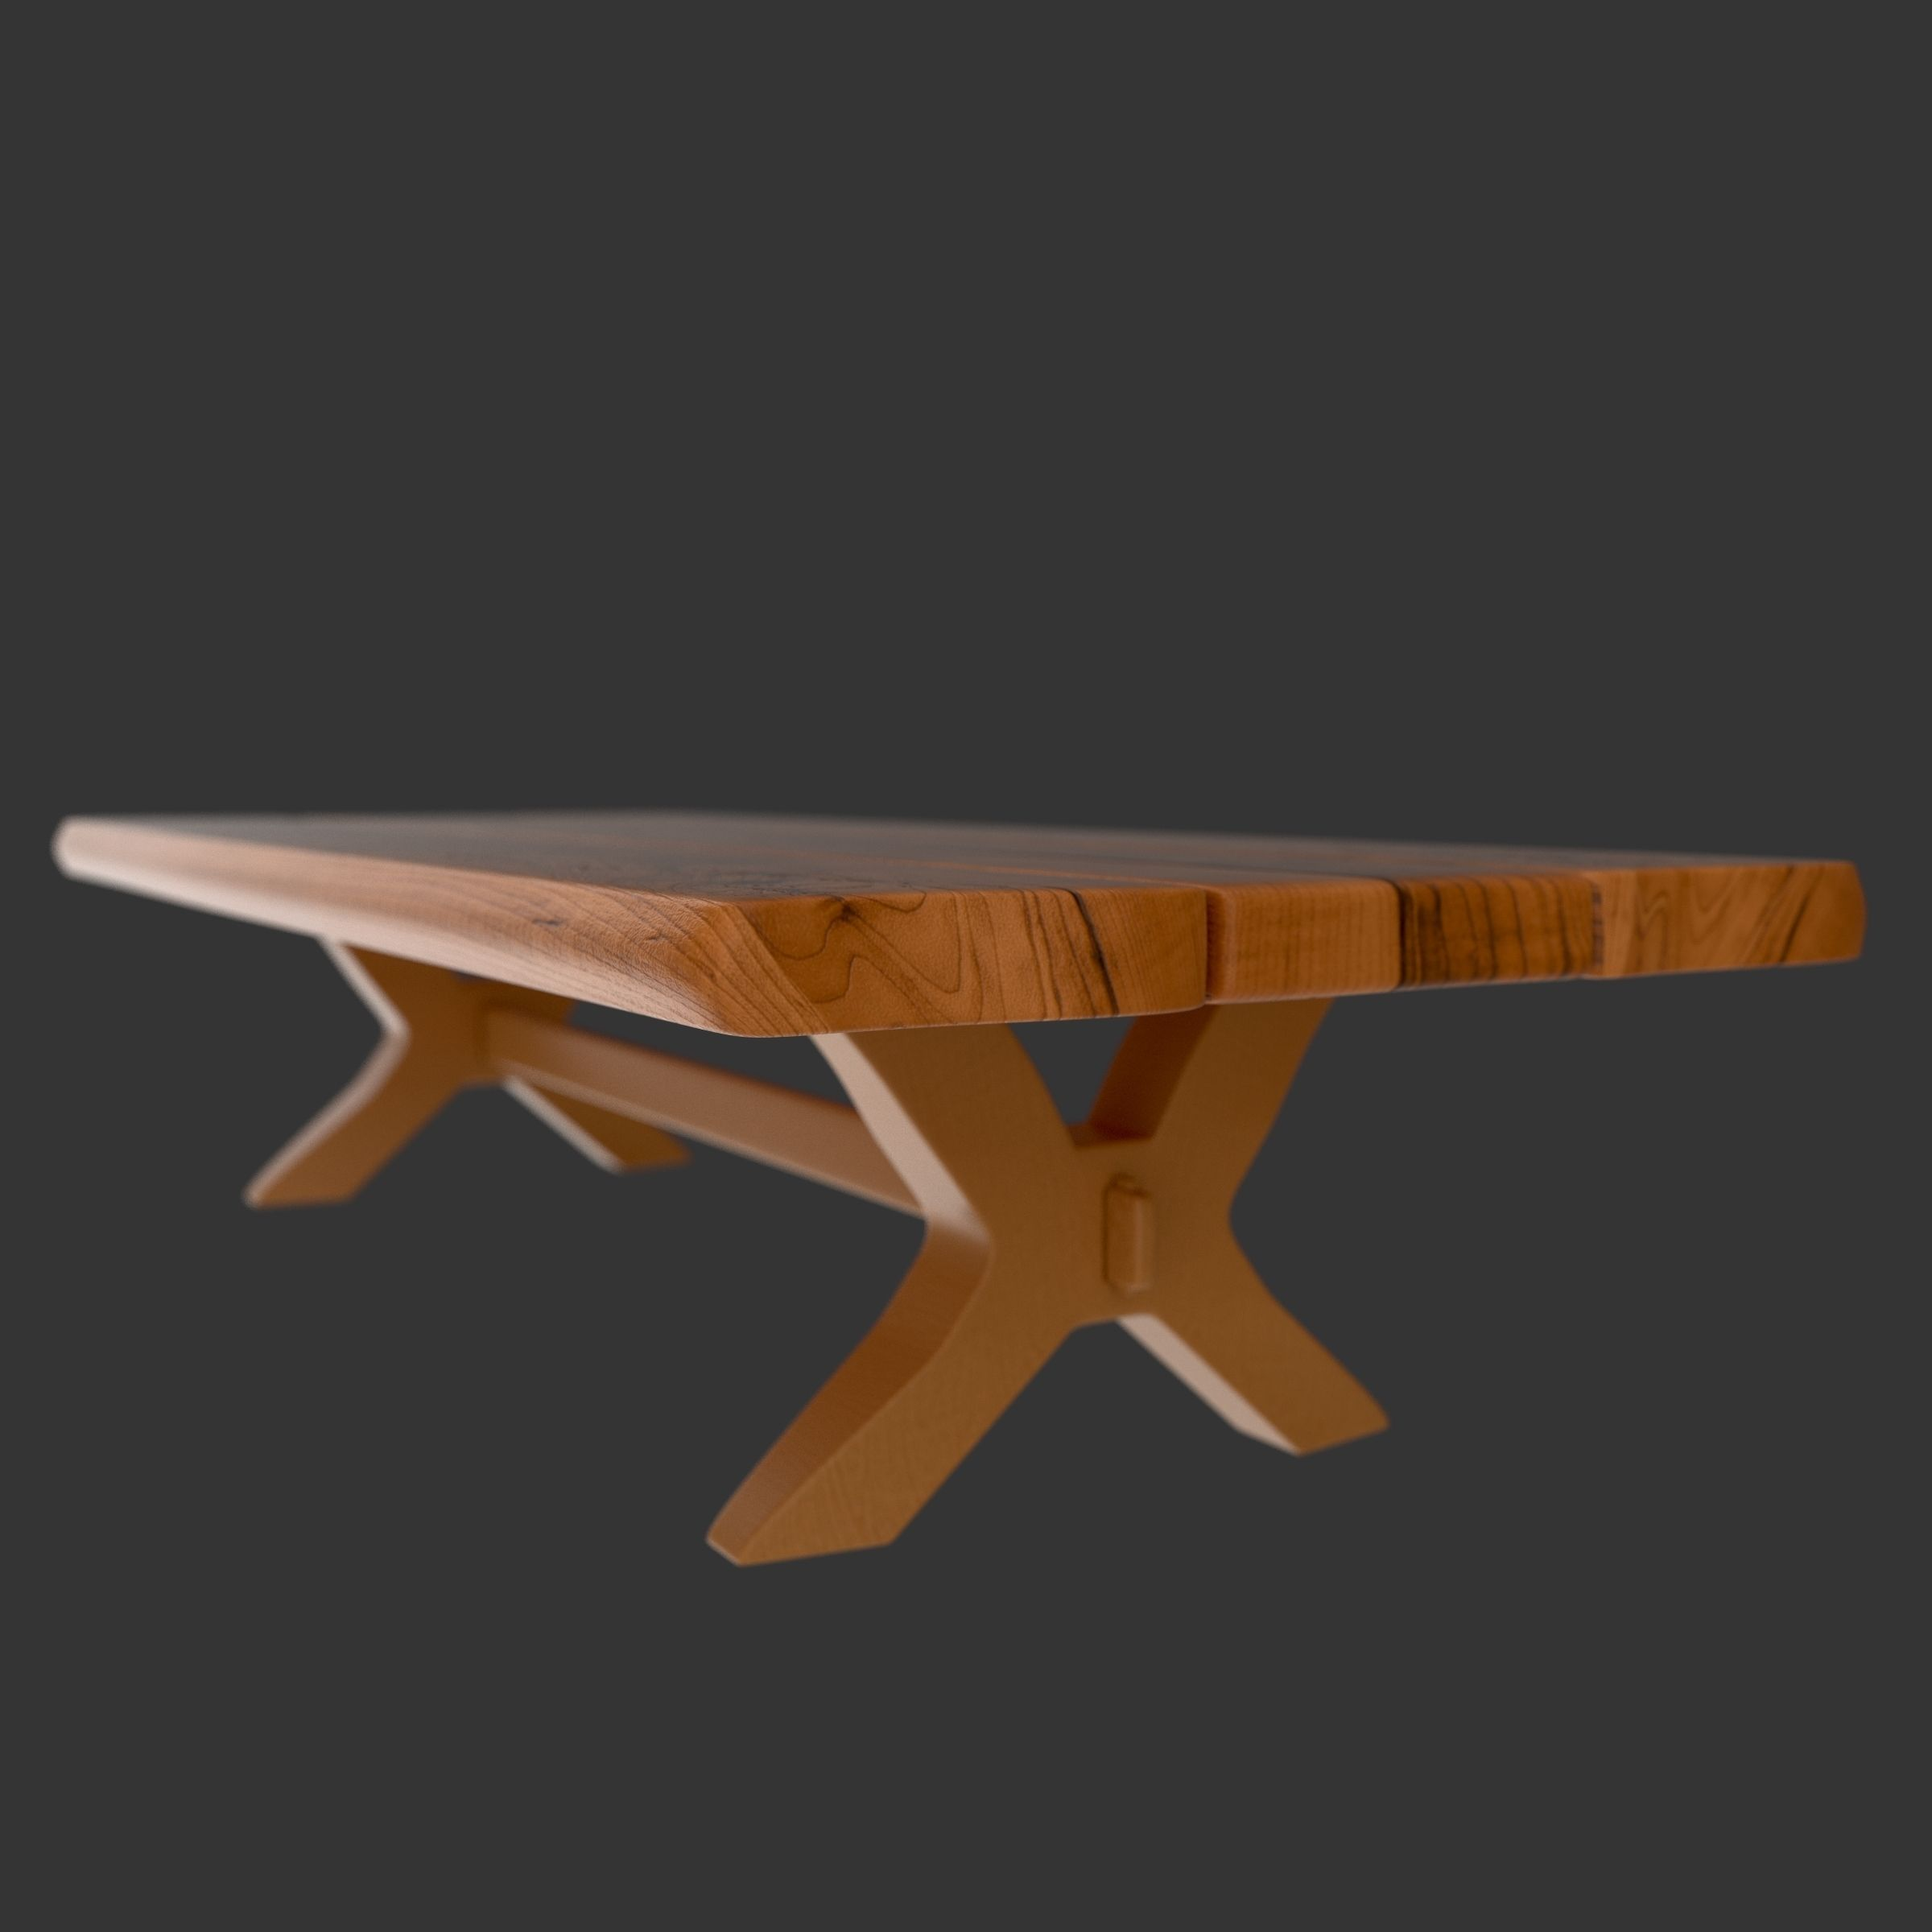 Wood table free 3d model max 3ds fbx for Table 3d model